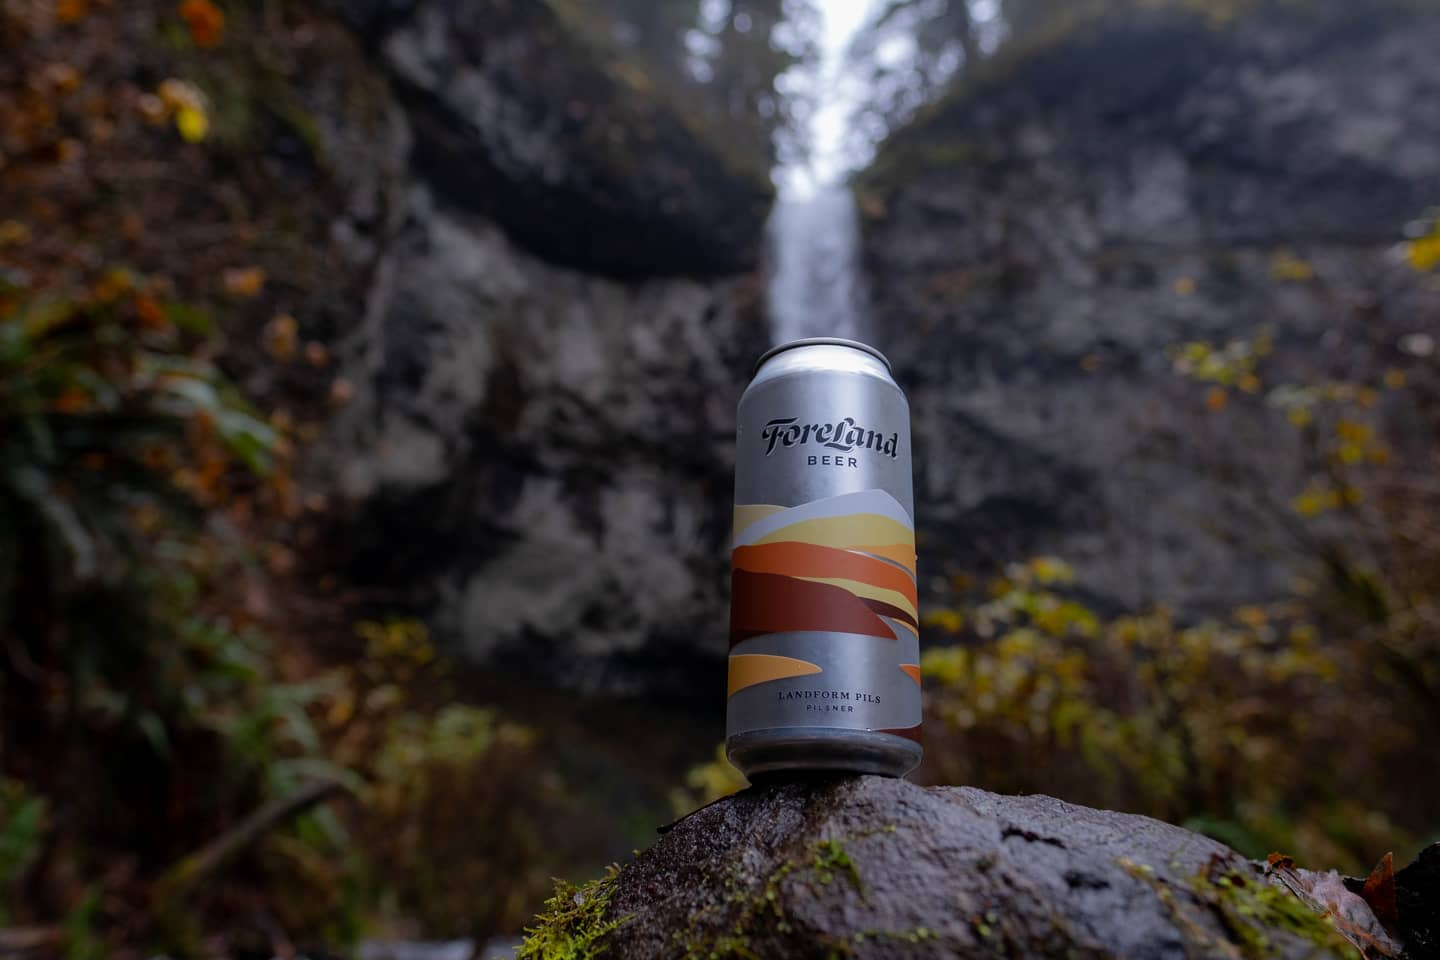 A beer can sits on a rock in front of a waterfall